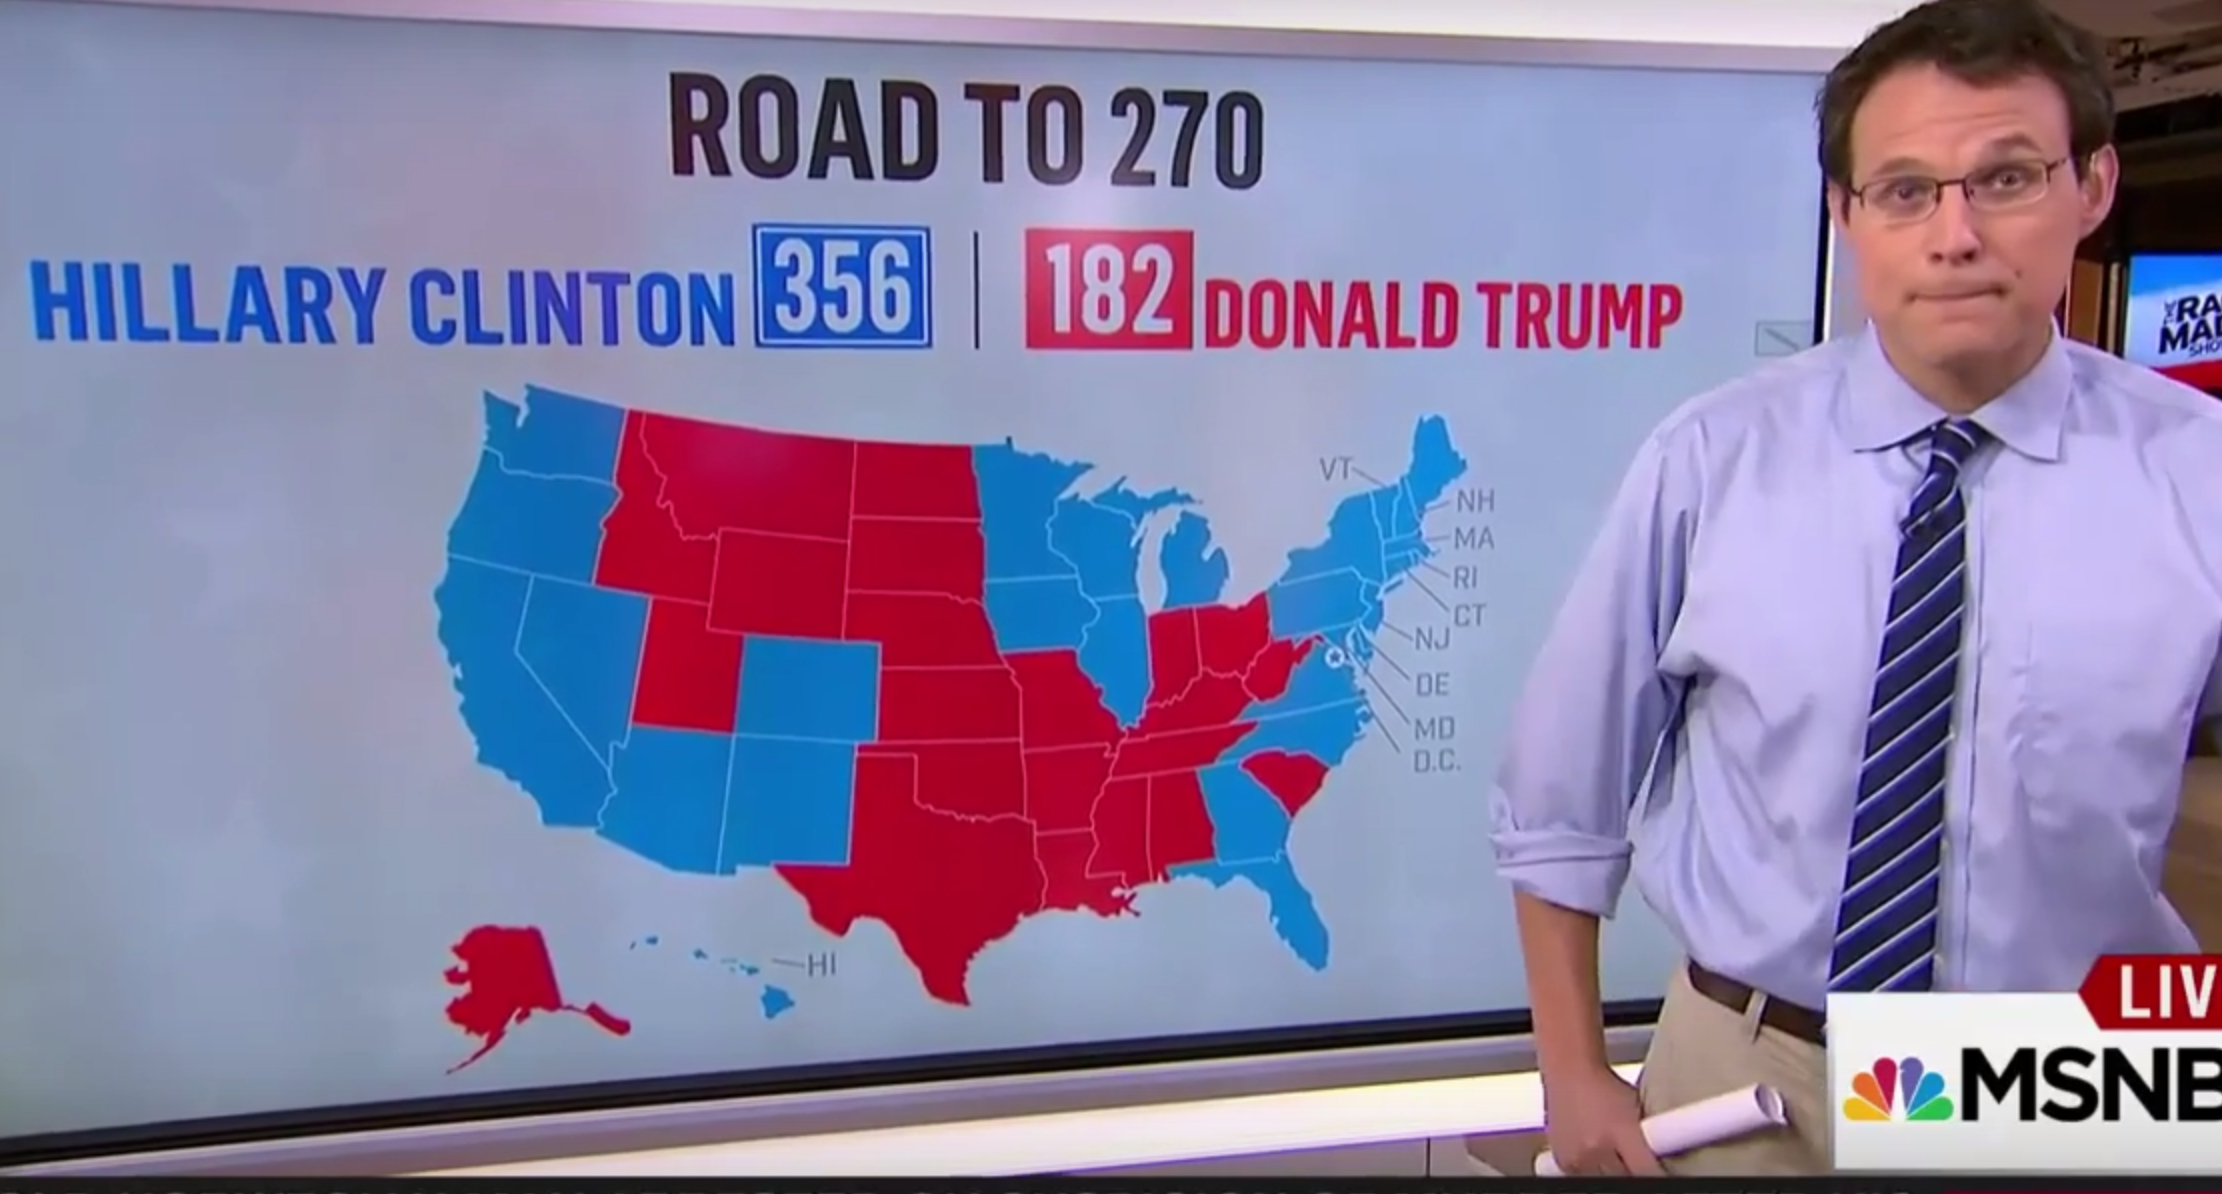 Msnbc Political Map.Should Phaw Be Questioning The Intellect Of Righty Discussionist